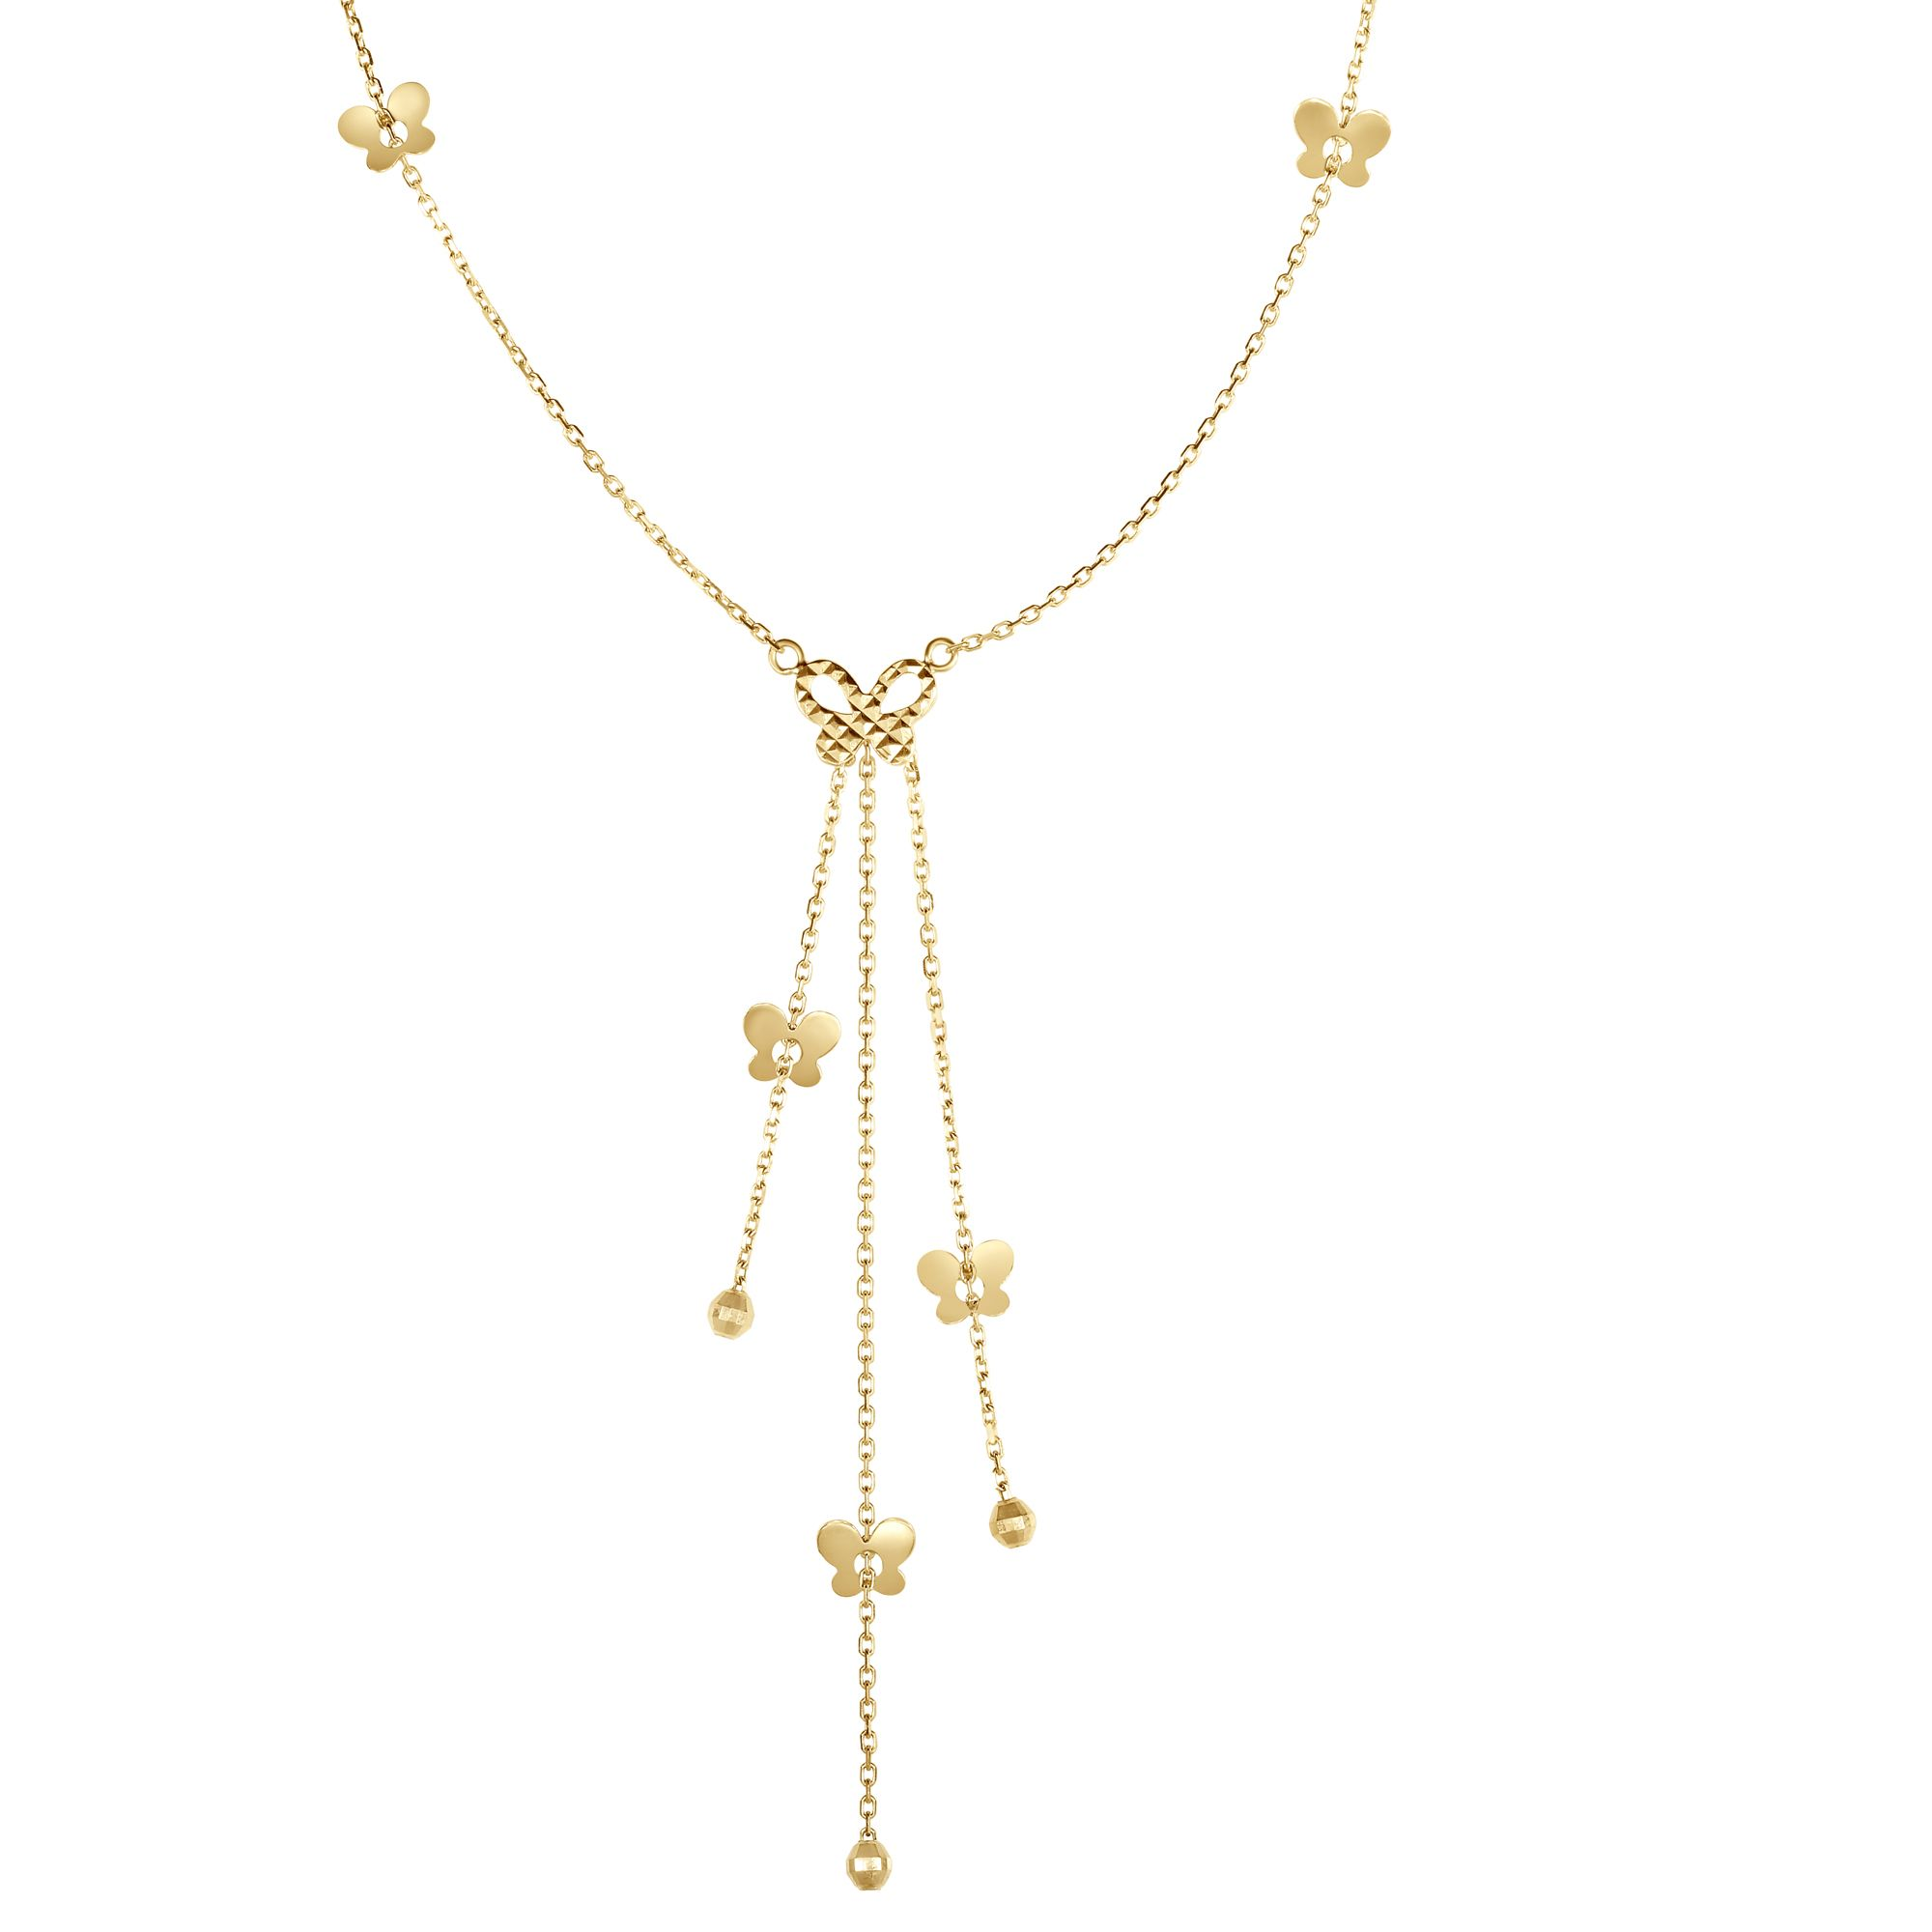 14K Yellow Gold Shiny+Diamond Cut Cable Chain Lariat Type Necklace with Butterfly Elements+Lobs ter Clasp by Goldia